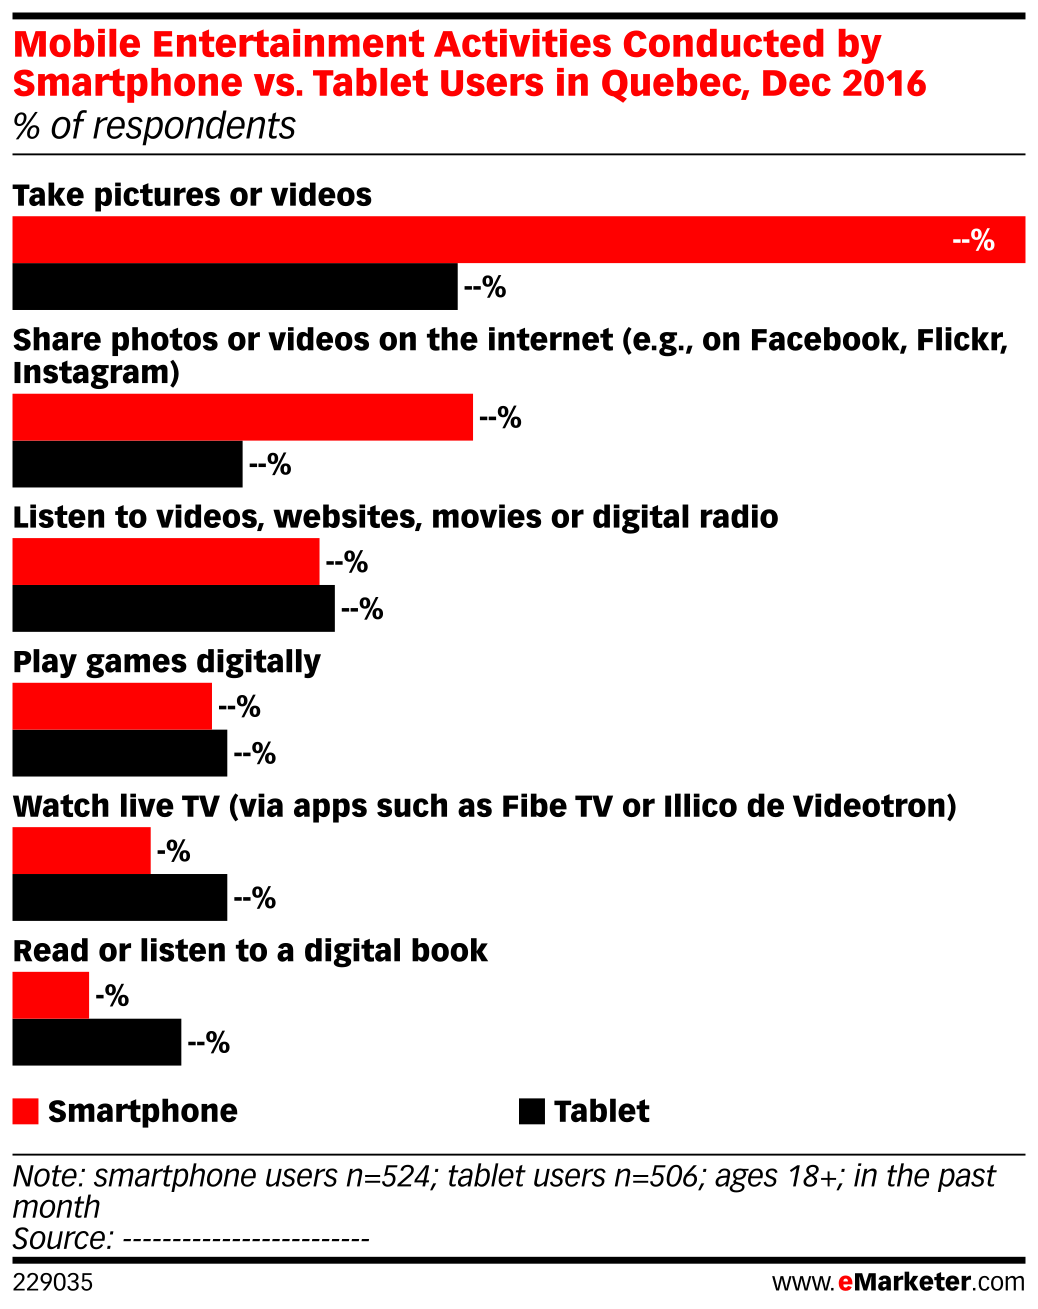 Mobile Entertainment Activities Conducted by Smartphone vs. Tablet Users in Quebec, Dec 2016 (% of respondents)